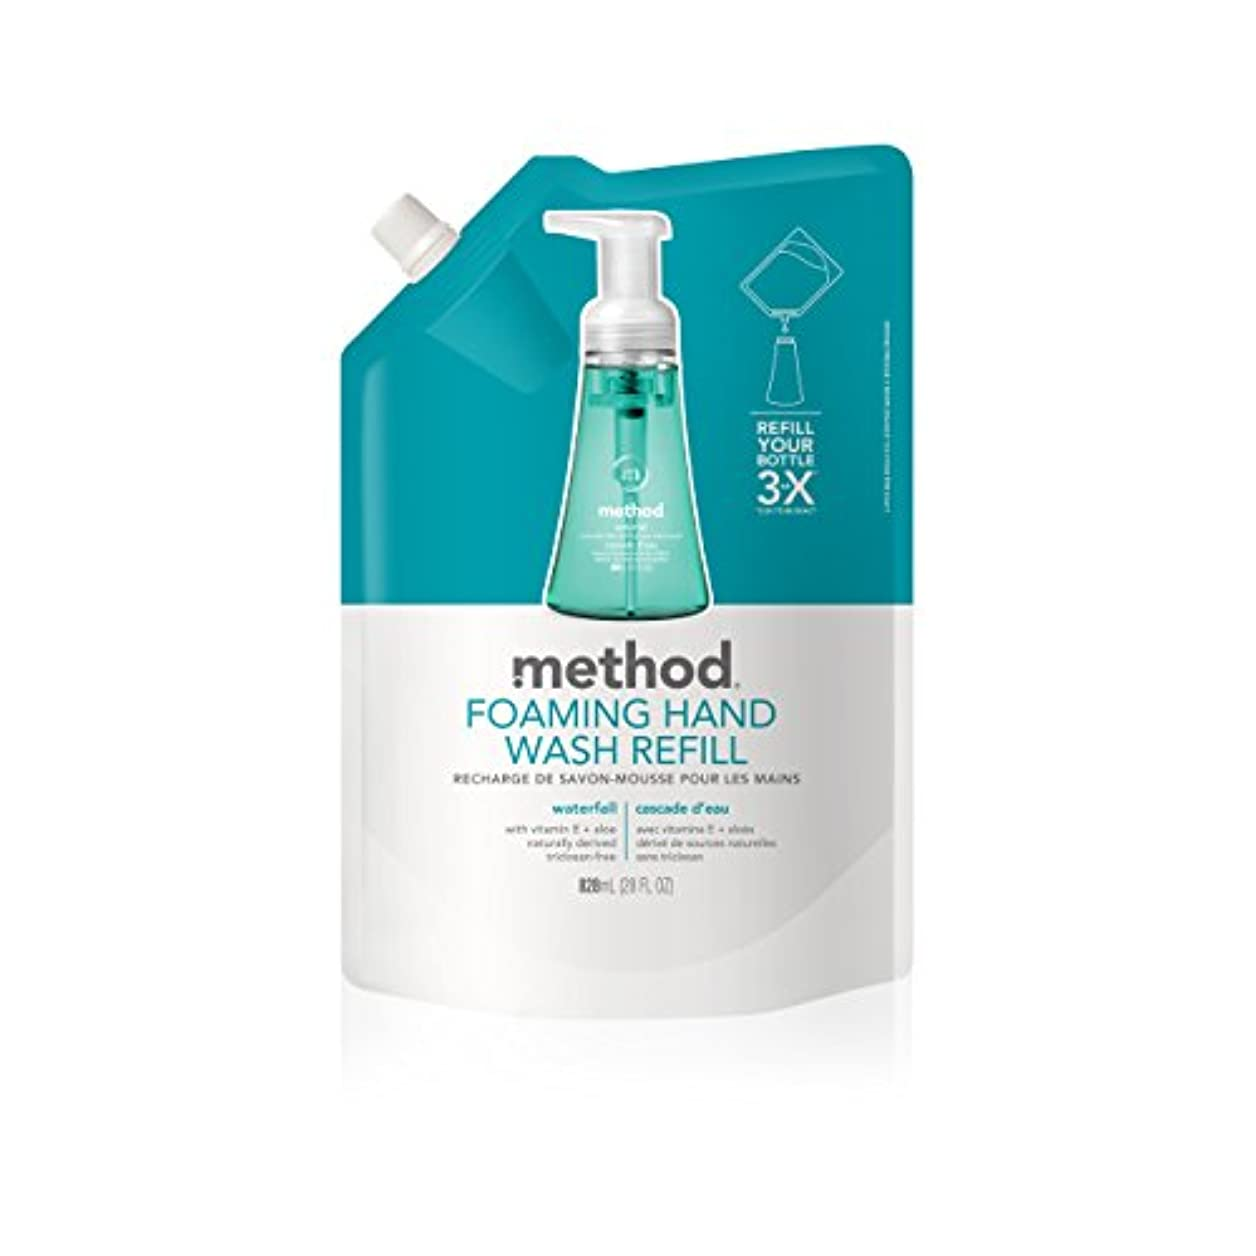 勝利創傷まどろみのあるMethod, Foaming Hand Wash Refill, Waterfall, 28 fl oz (828 ml)